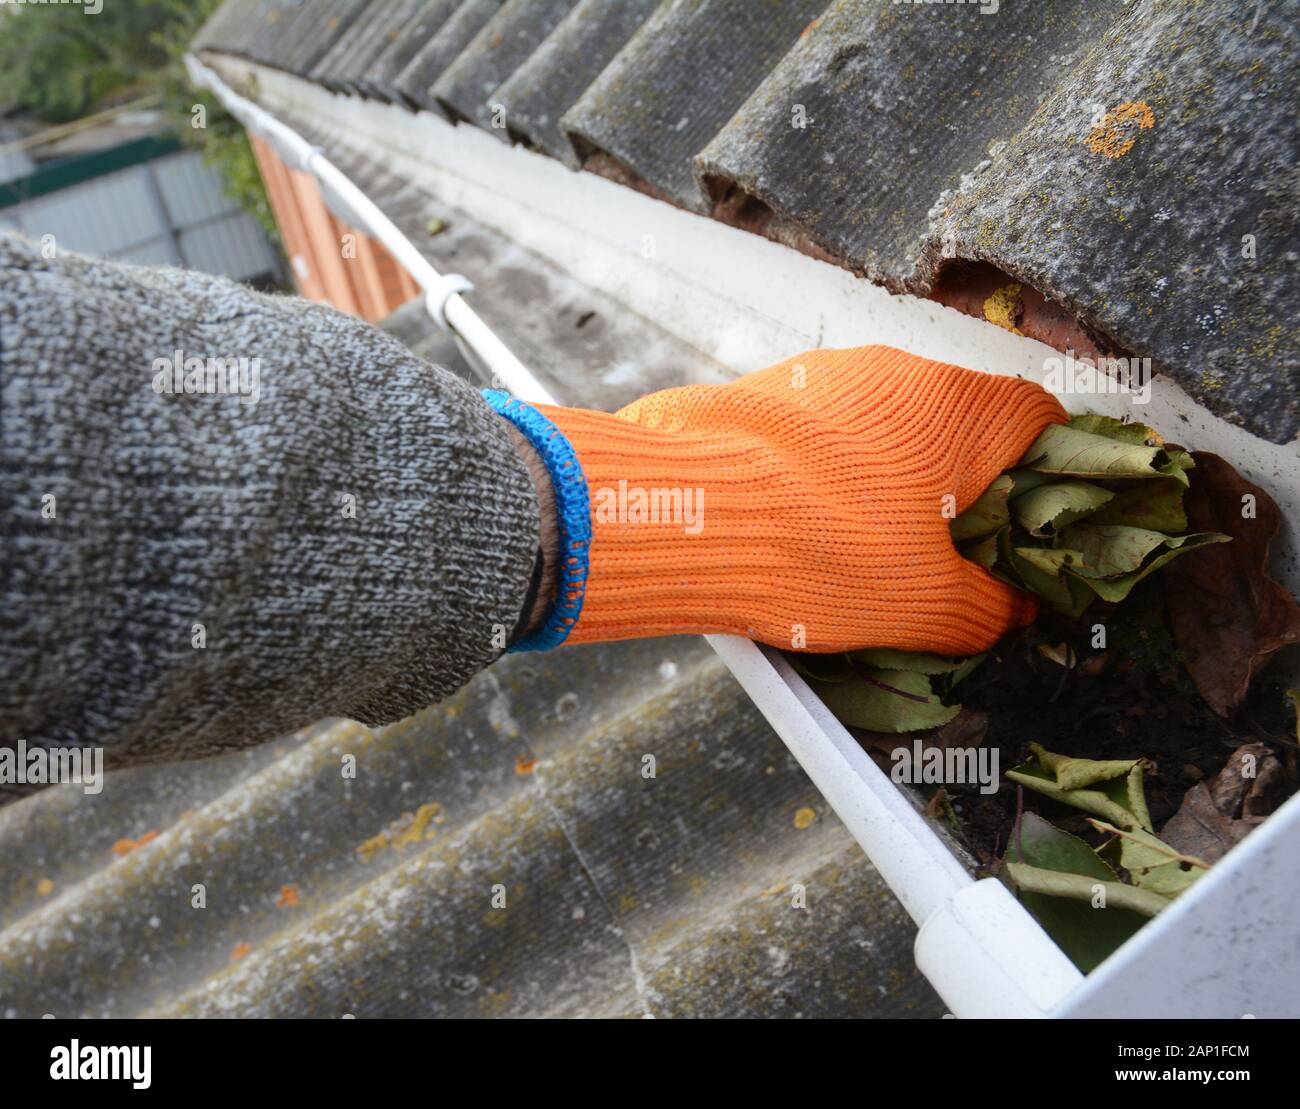 Drainage Cleaning High Resolution Stock Photography And Images Alamy